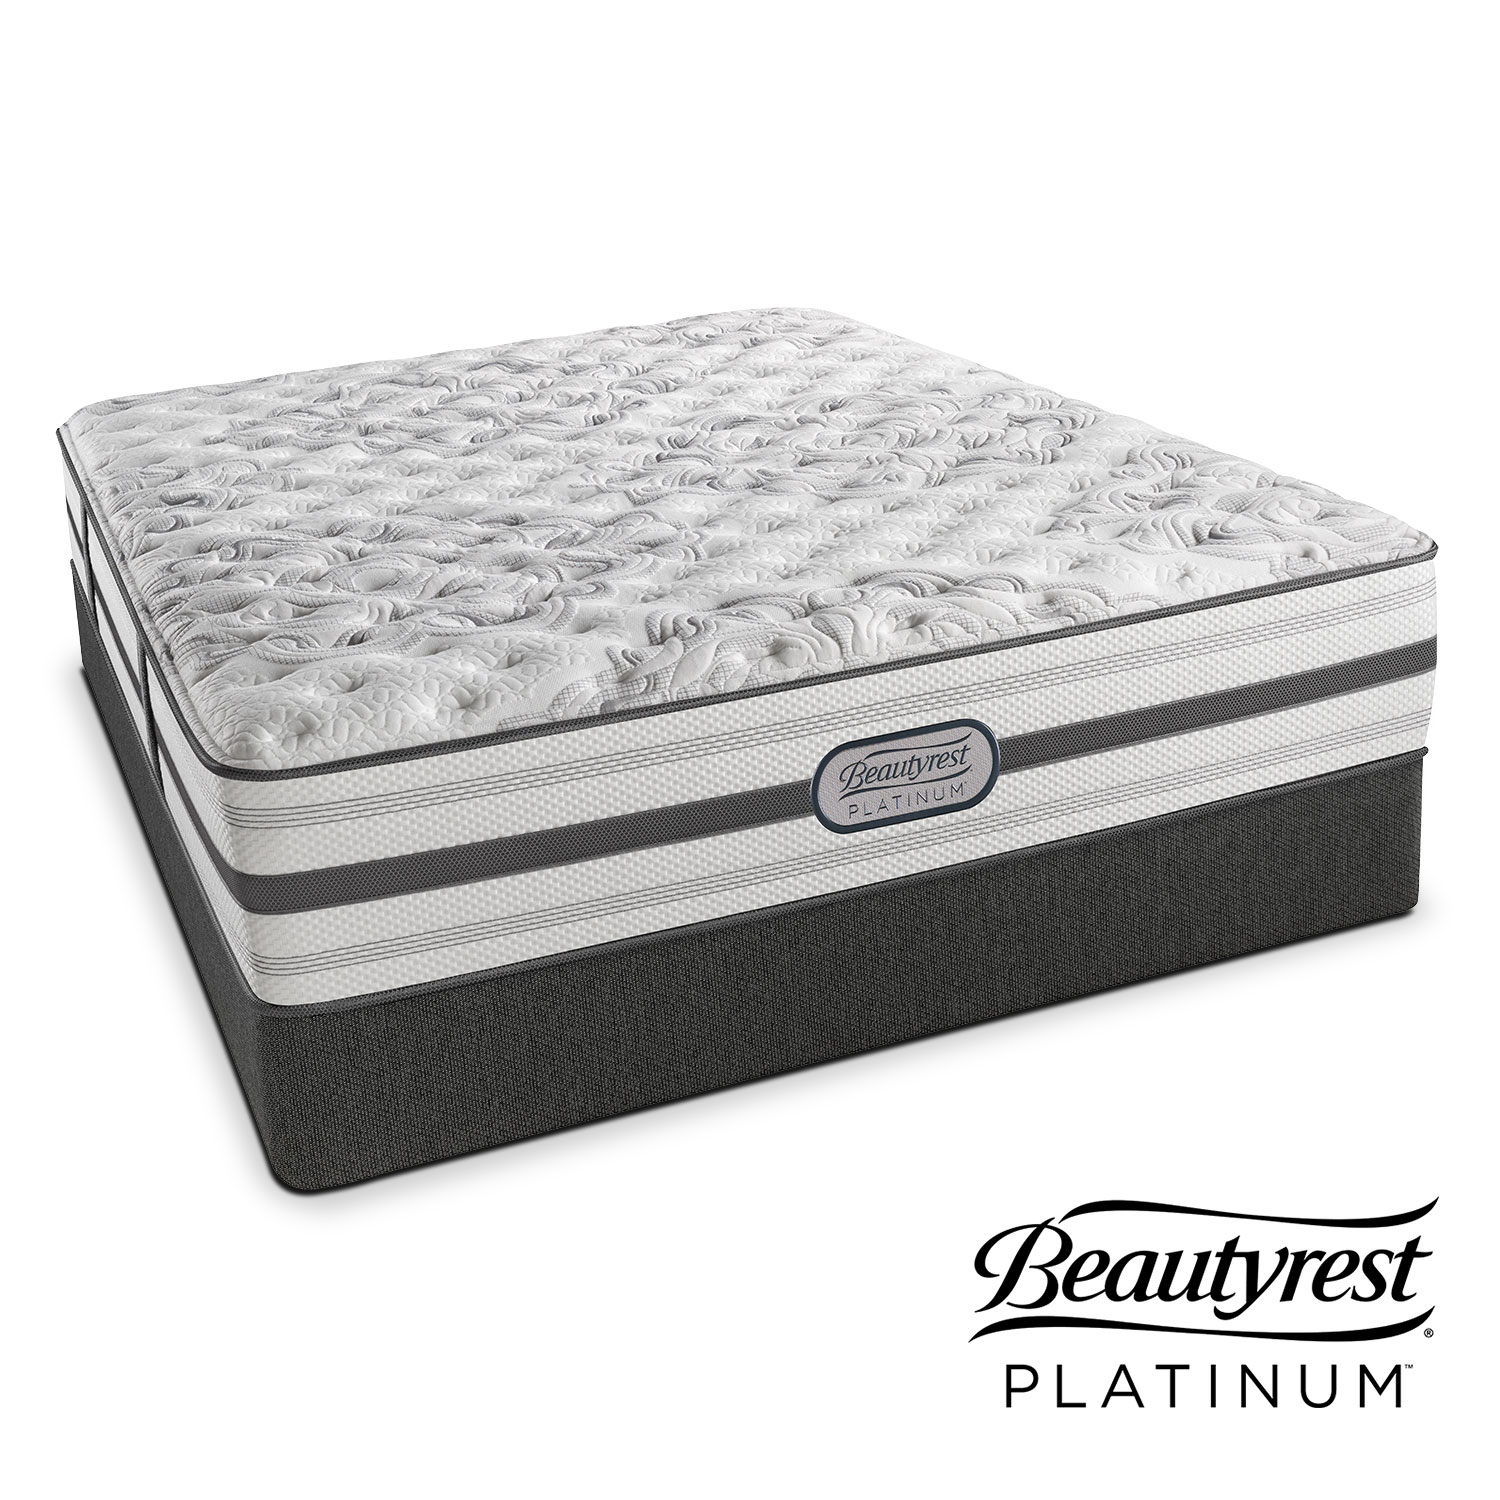 Mattresses and Bedding - Helena Full Mattress/Low-Profile Foundation Set